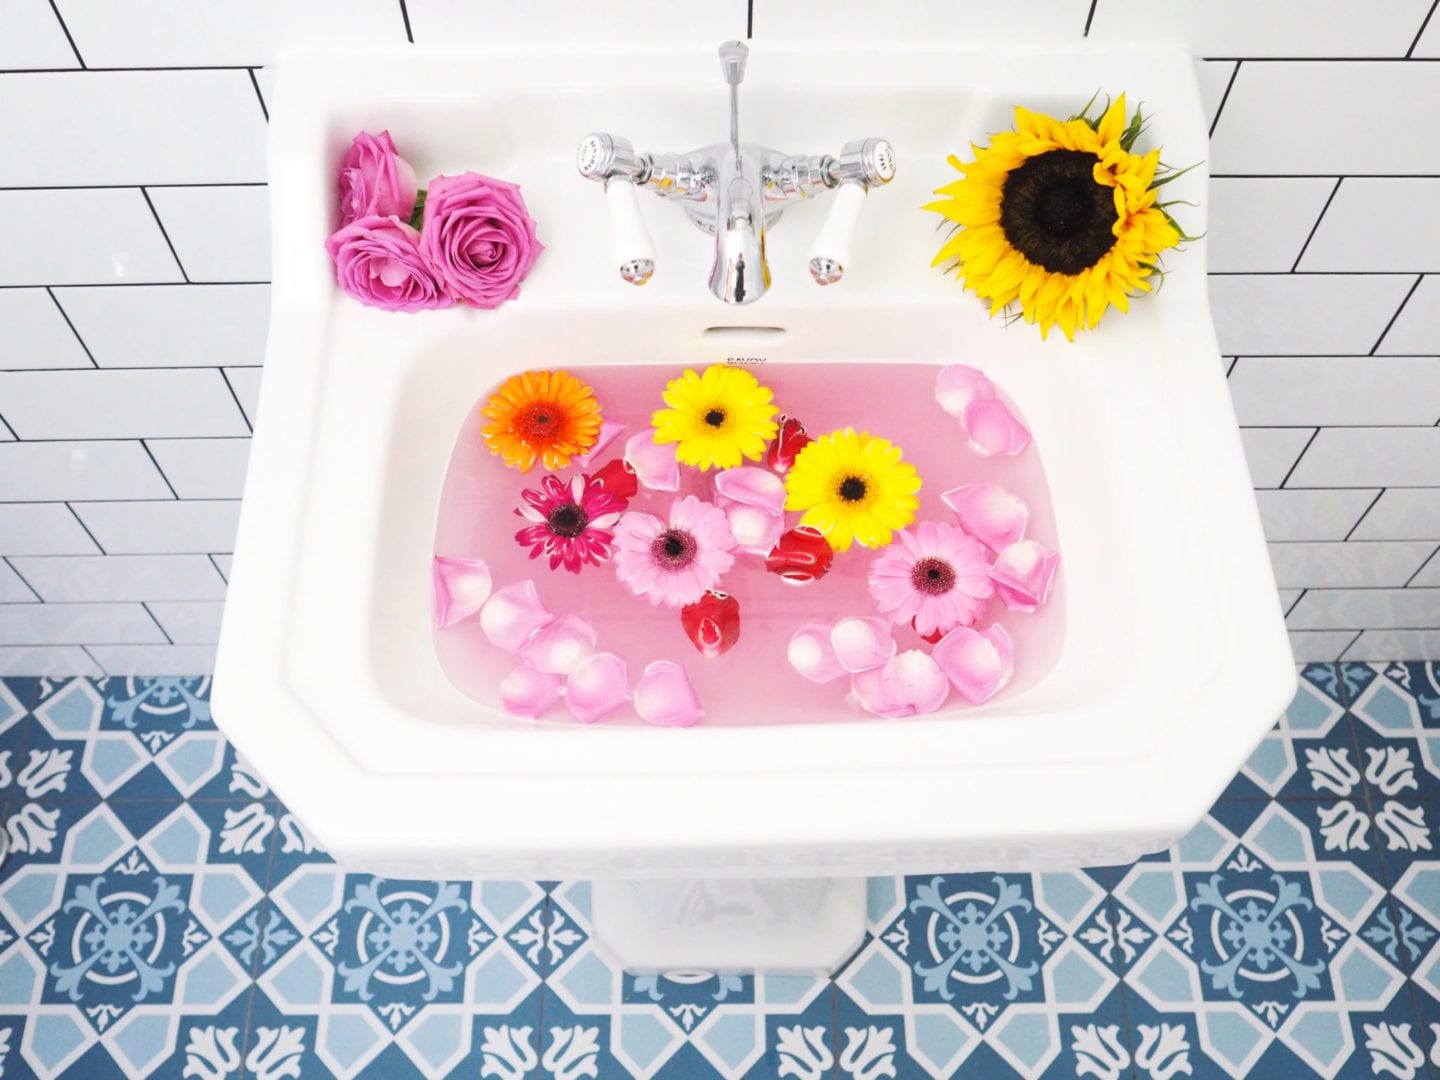 flowers-in-a-sink-